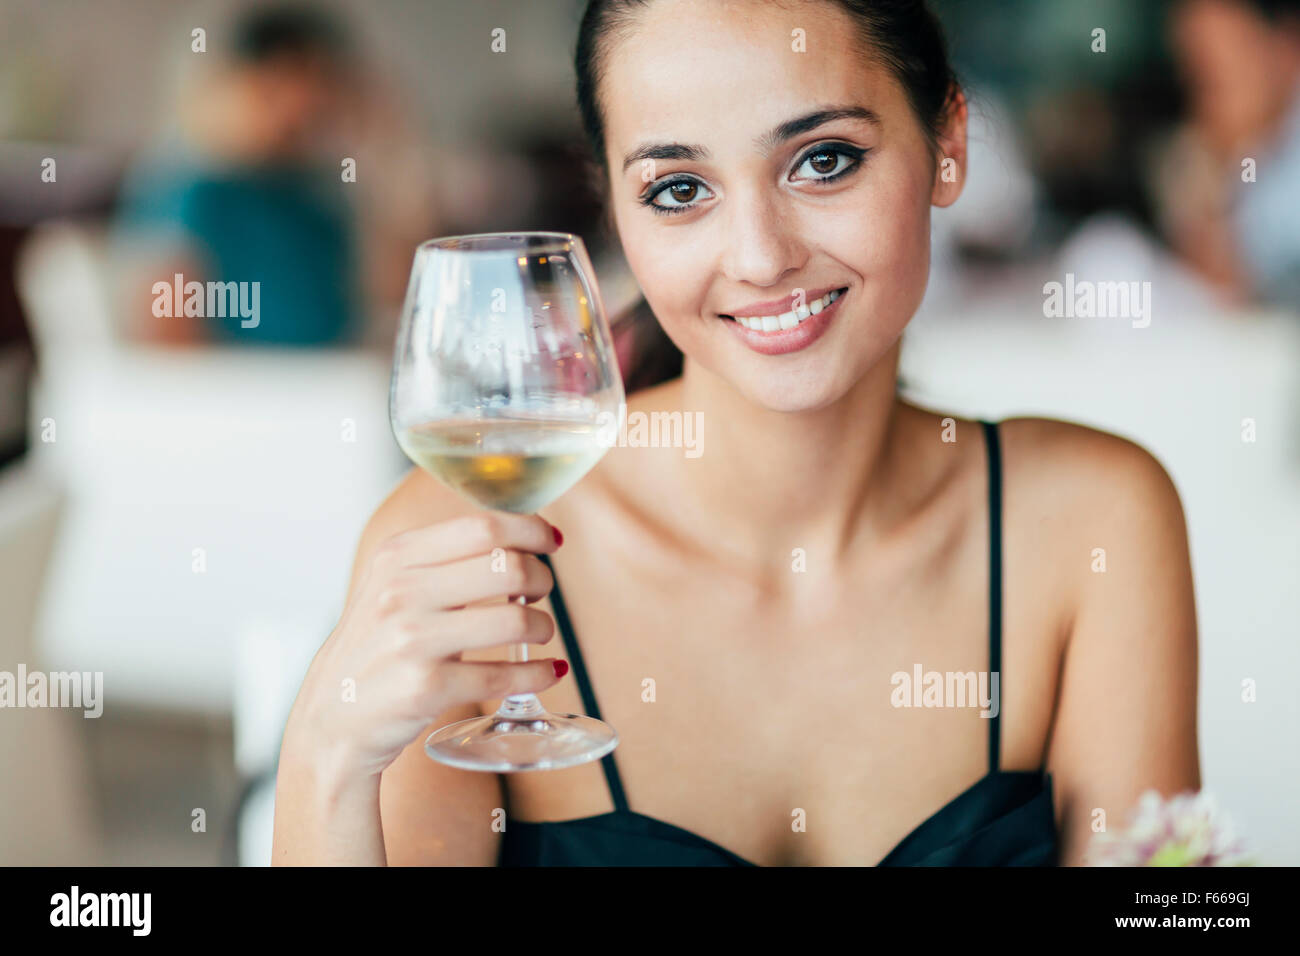 Woman tasting white wine in restaurant and lifting glass accordingly - Stock Image